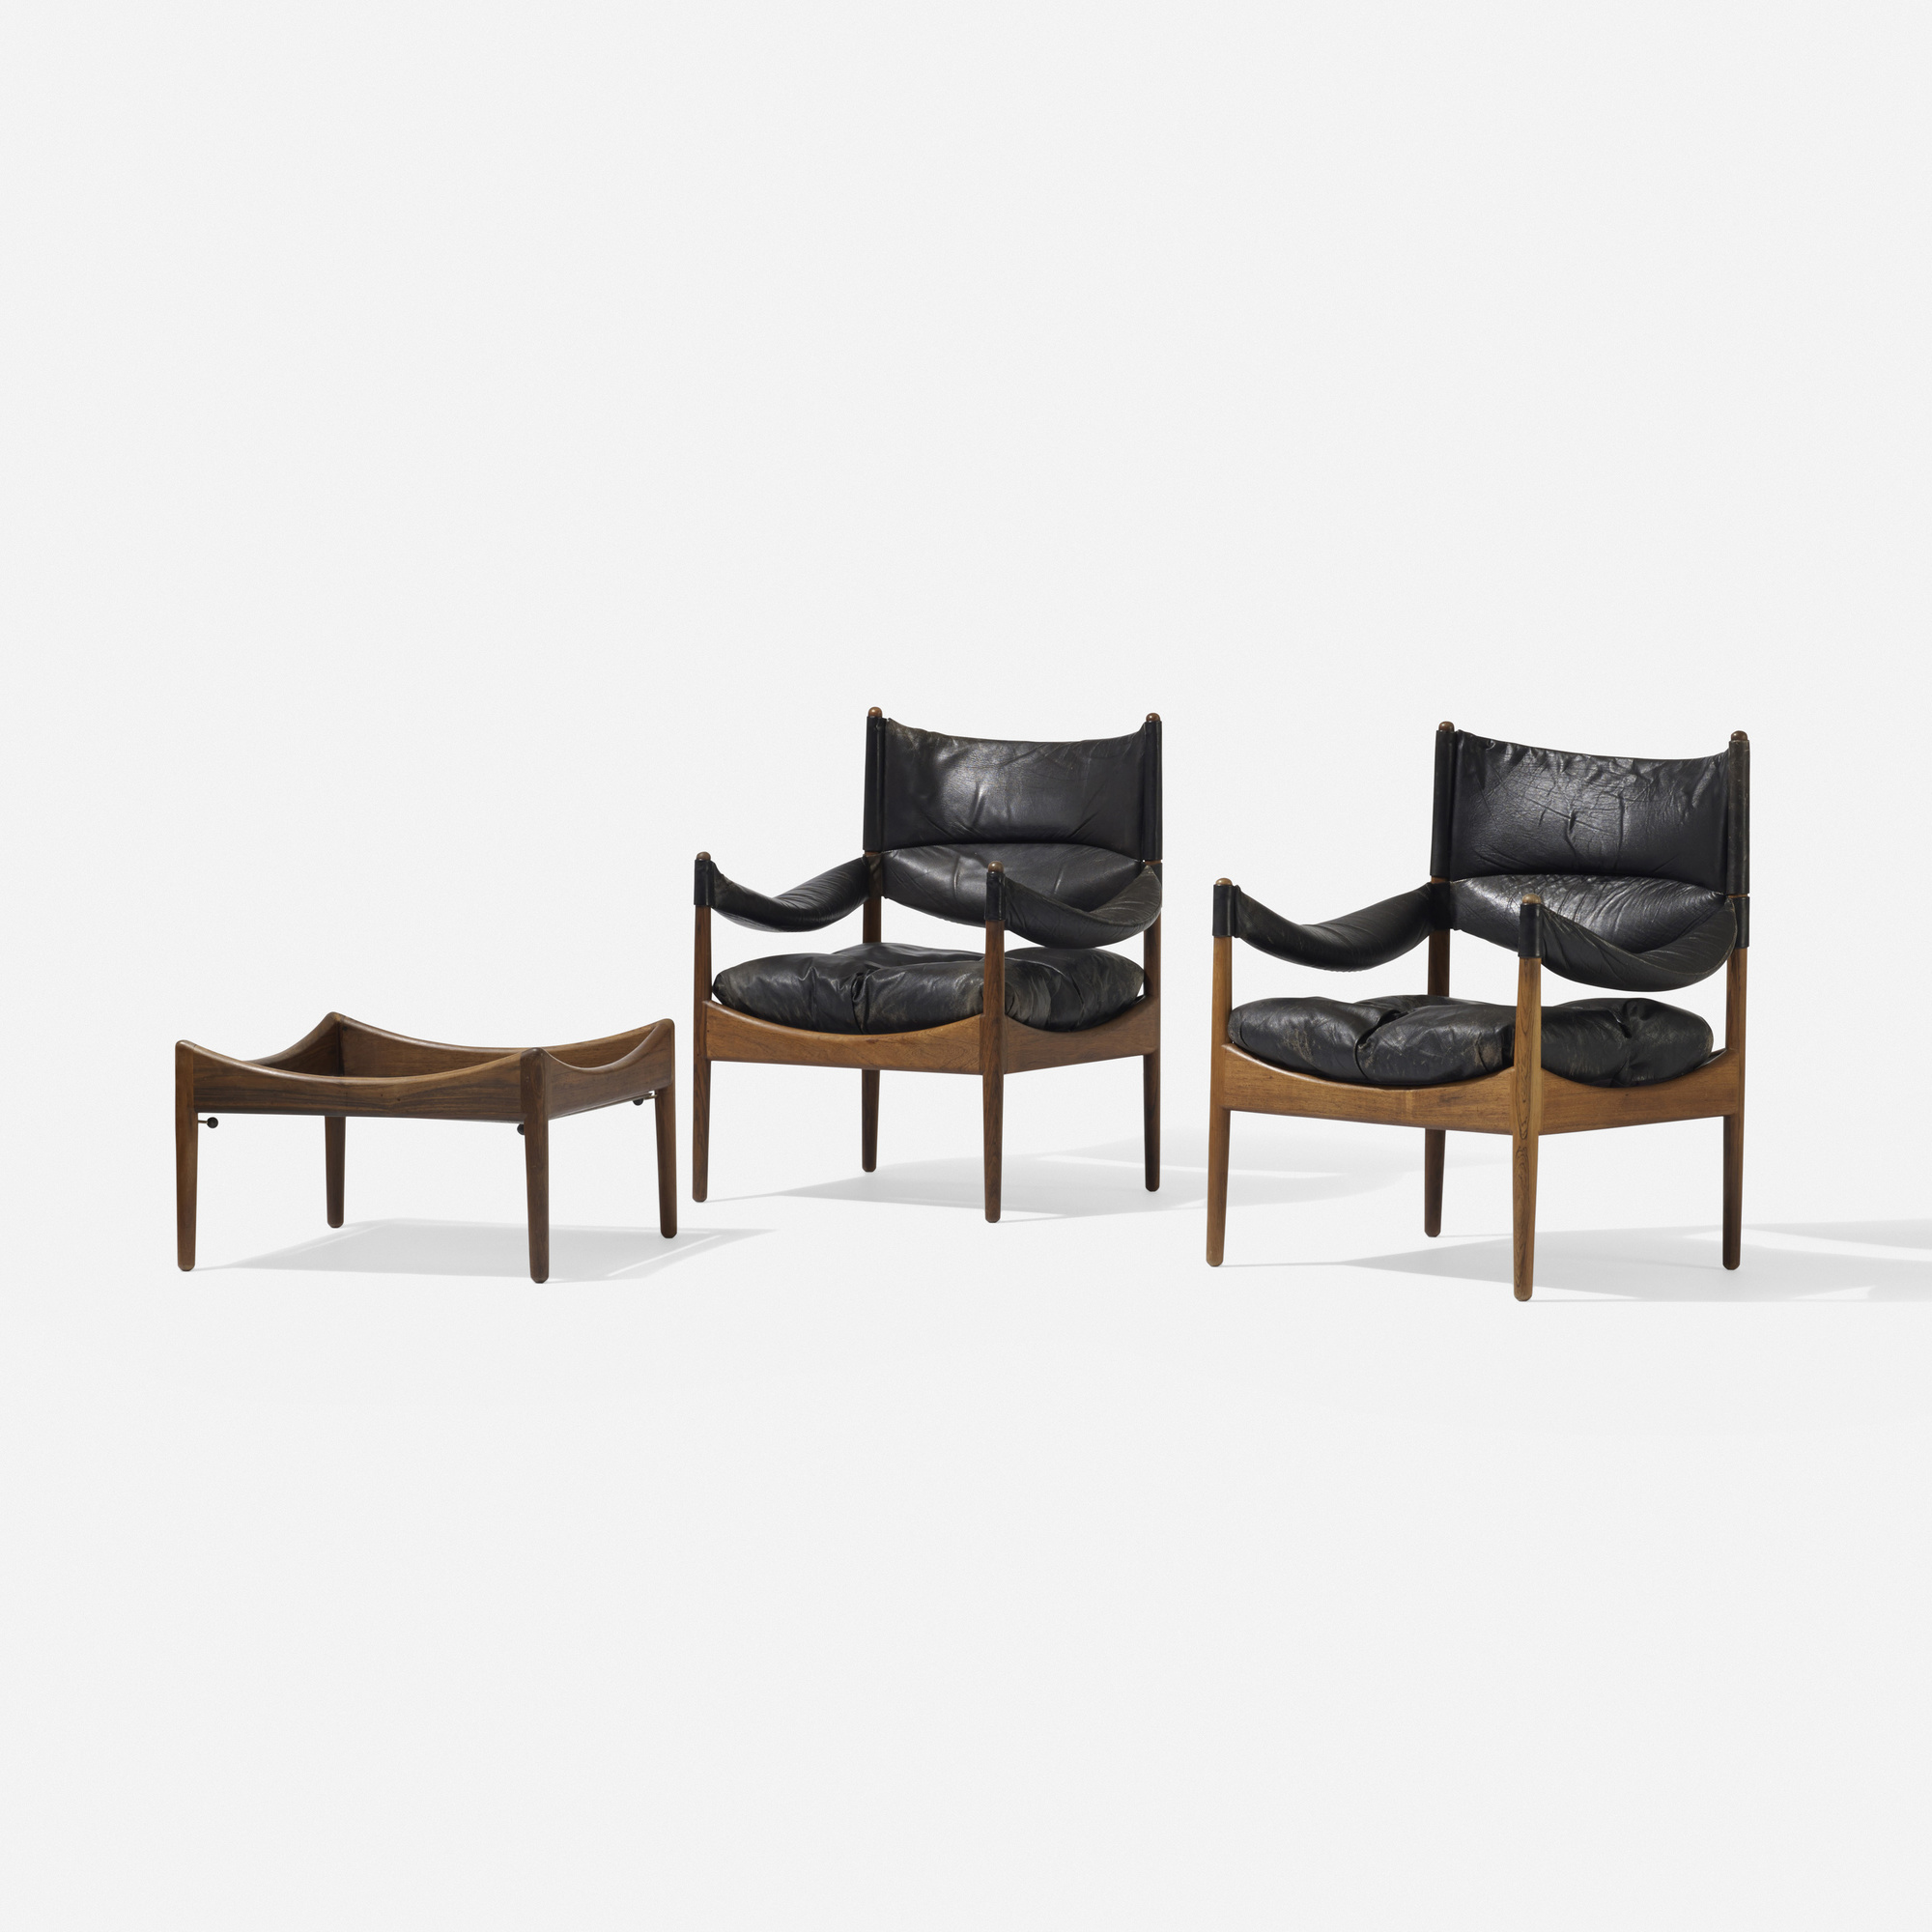 773: Kristian Vedel / pair of Modus lounge chairs and occasional table (1 of 4)